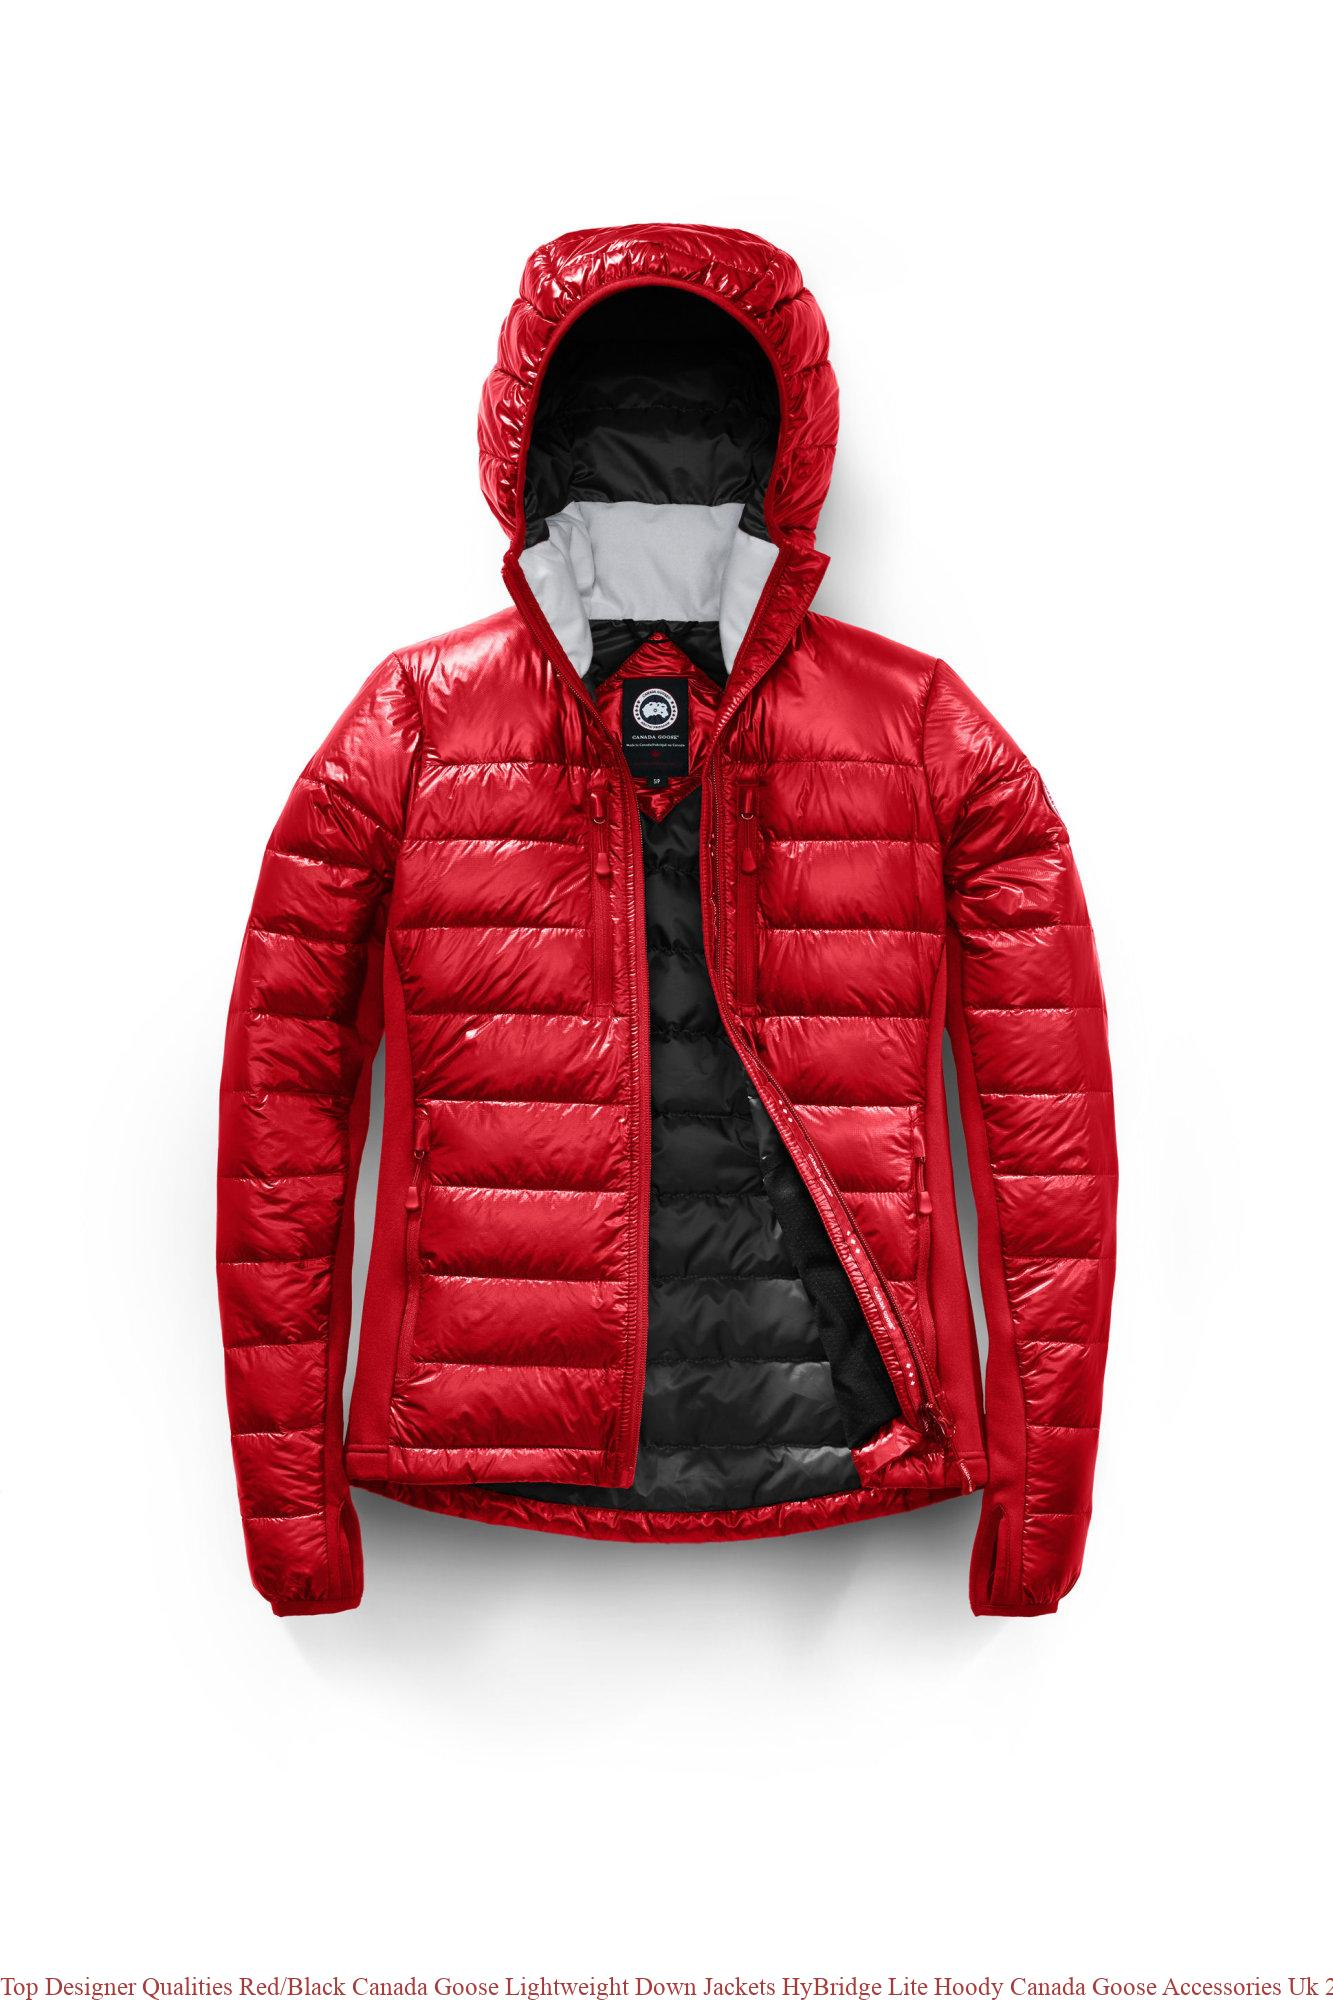 bd6020acd0a Top Designer Qualities Red/Black Canada Goose Lightweight Down Jackets  HyBridge Lite Hoody Canada Goose Accessories Uk 2703L